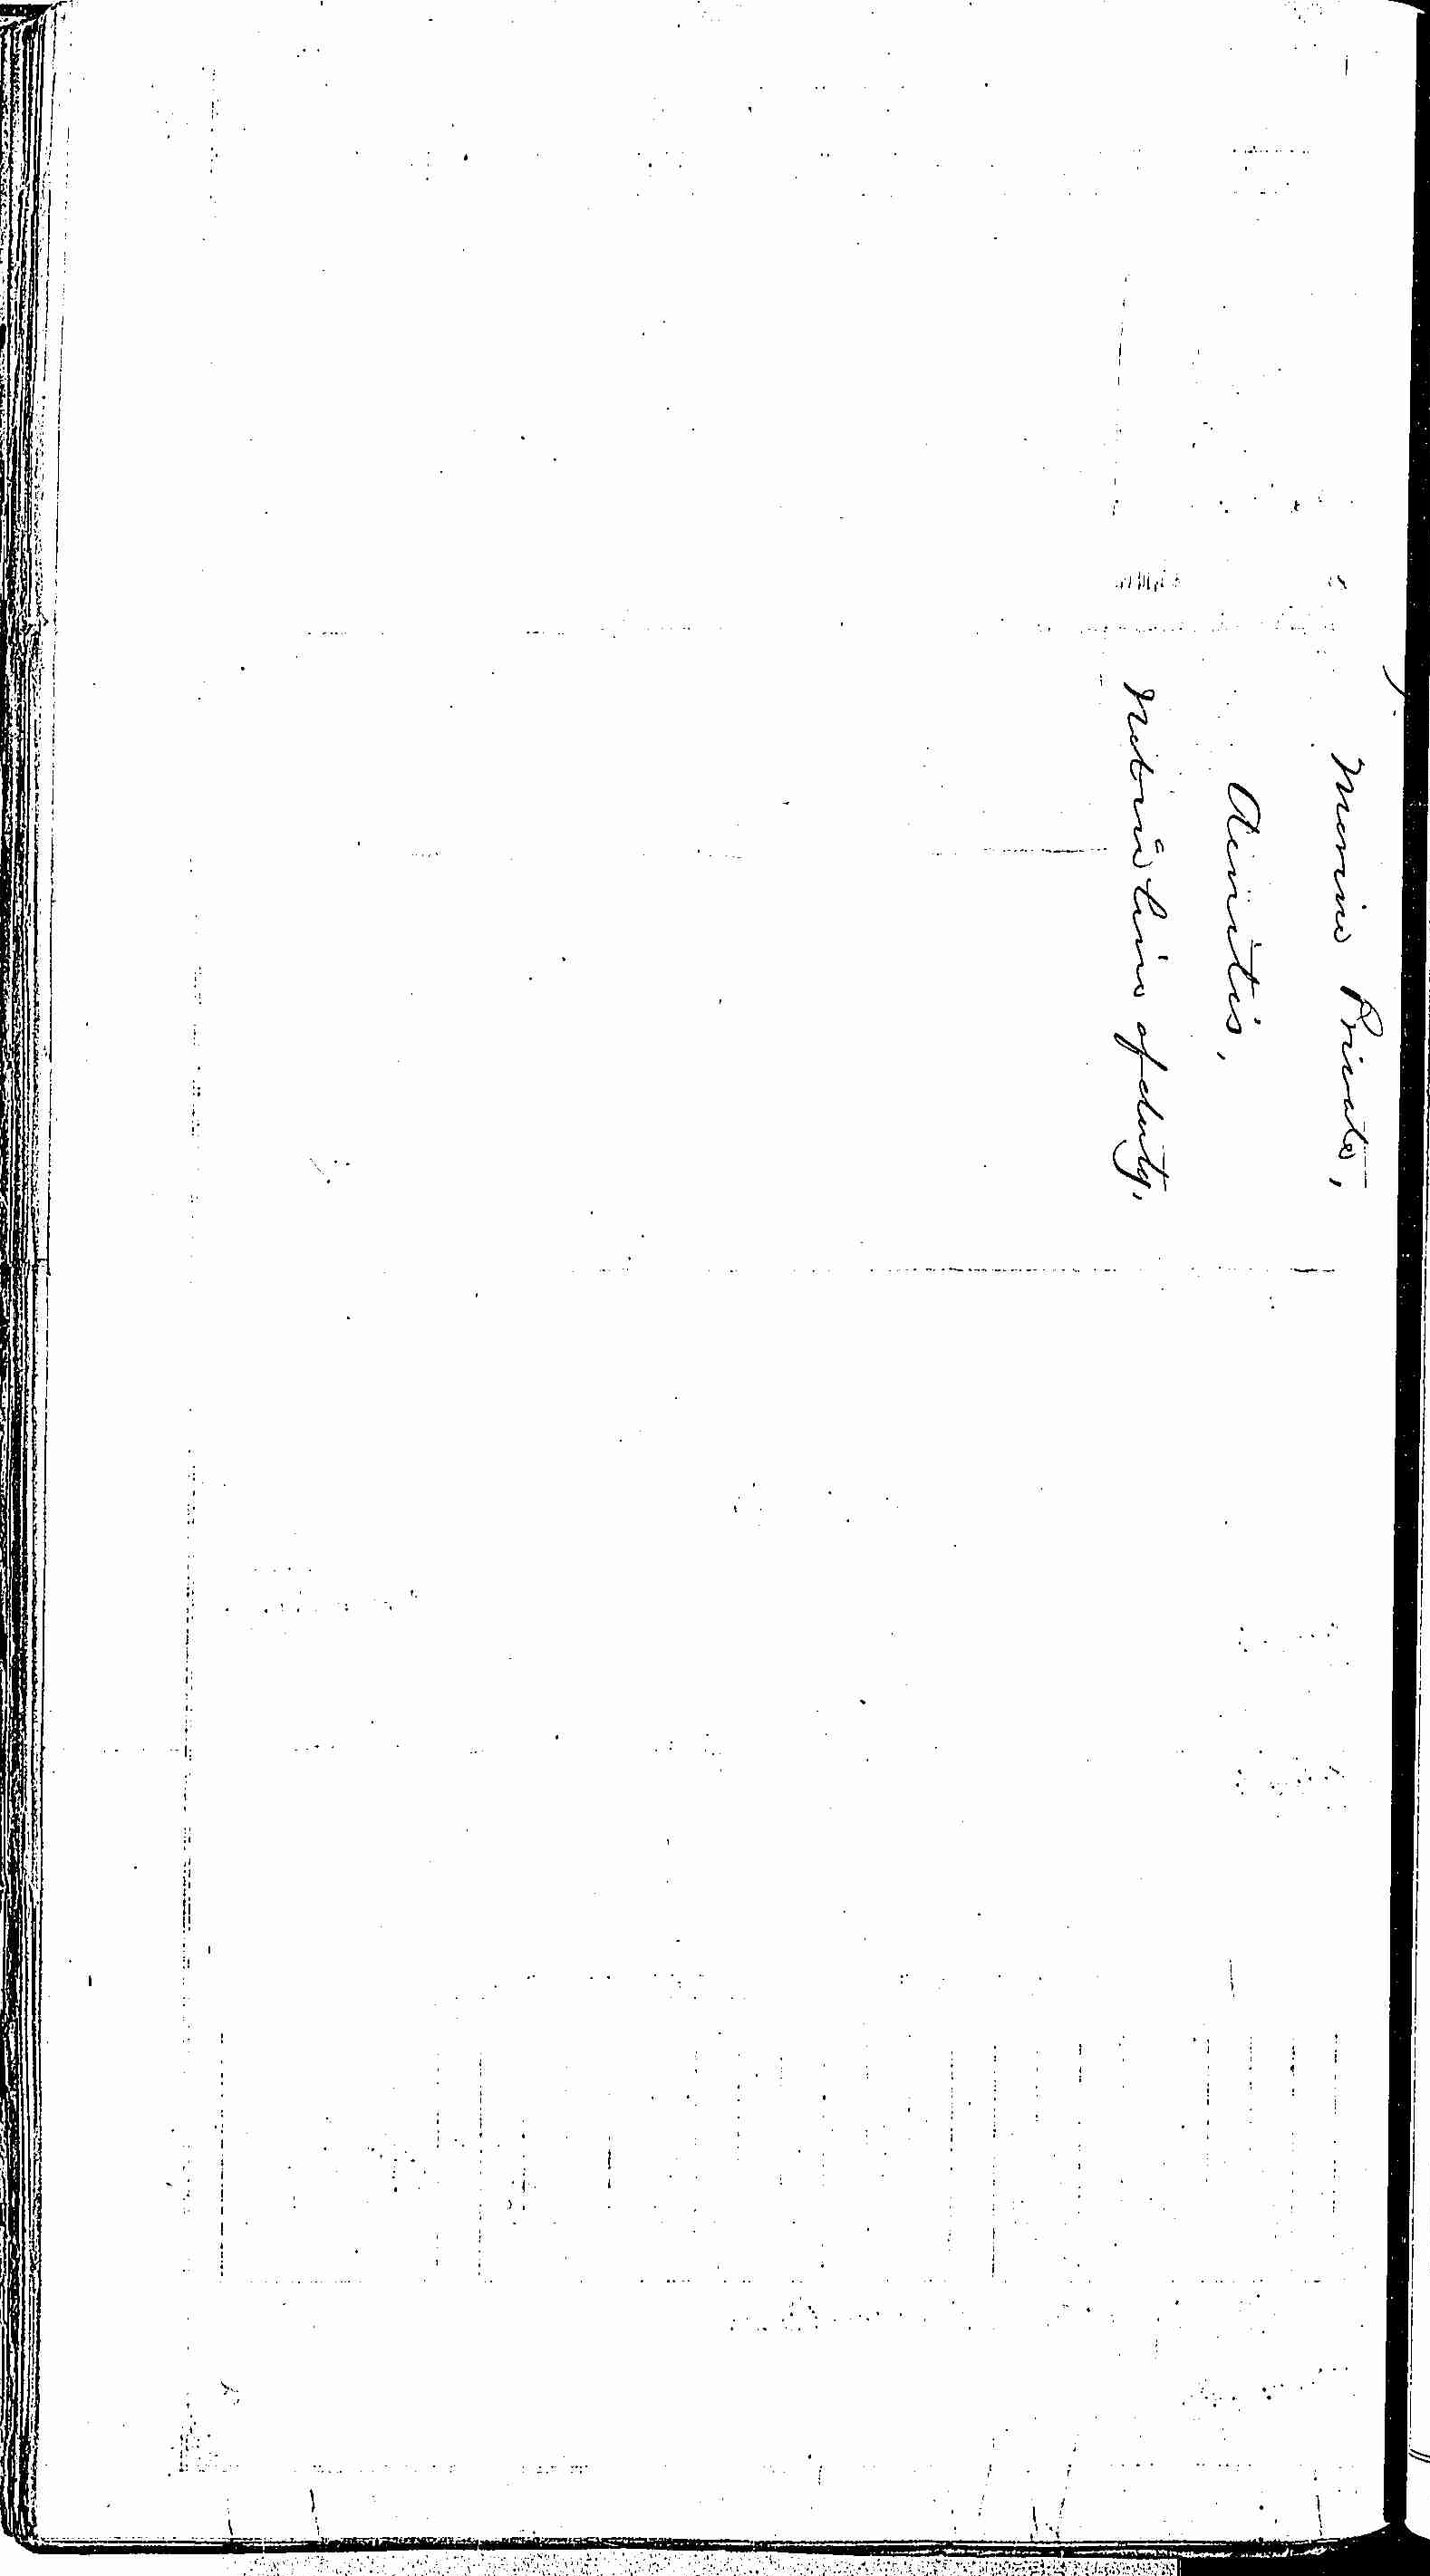 Entry for Zachariah McFarland (page 2 of 2) in the log Hospital Tickets and Case Papers - Naval Hospital - Washington, D.C. - 1866-68